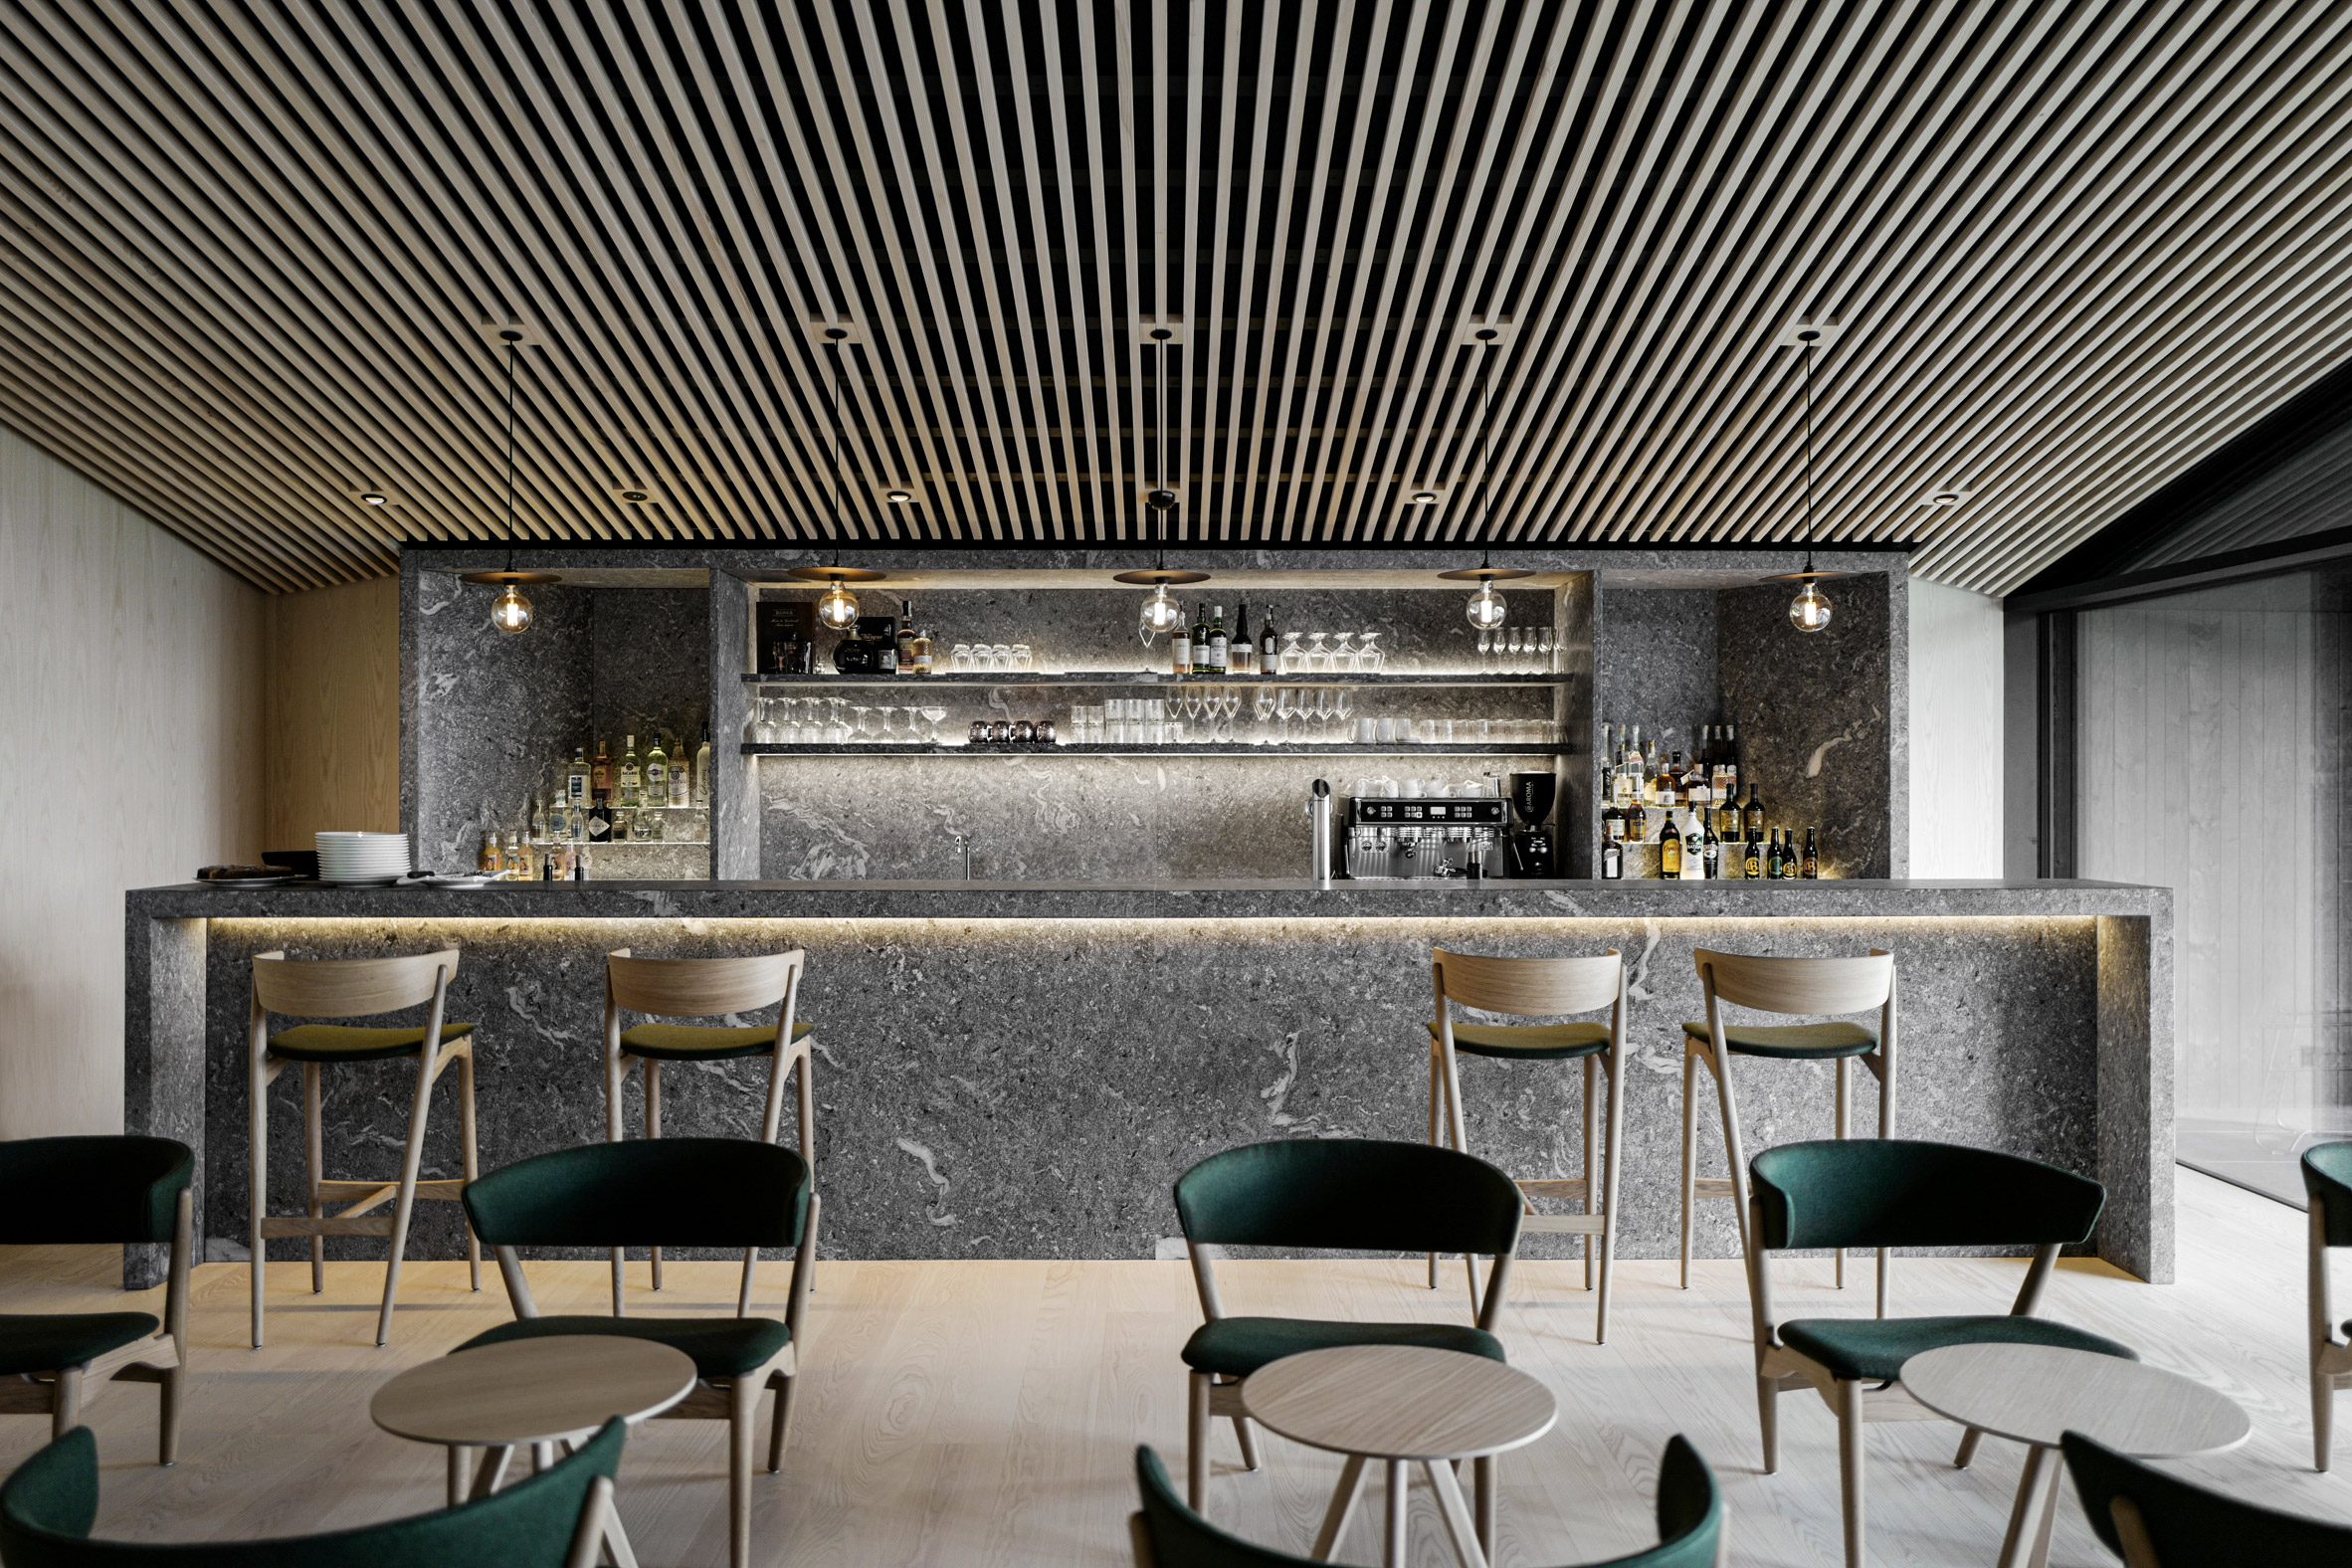 The bar inside Hotel Milla Montis by Peter Pichler Architecture